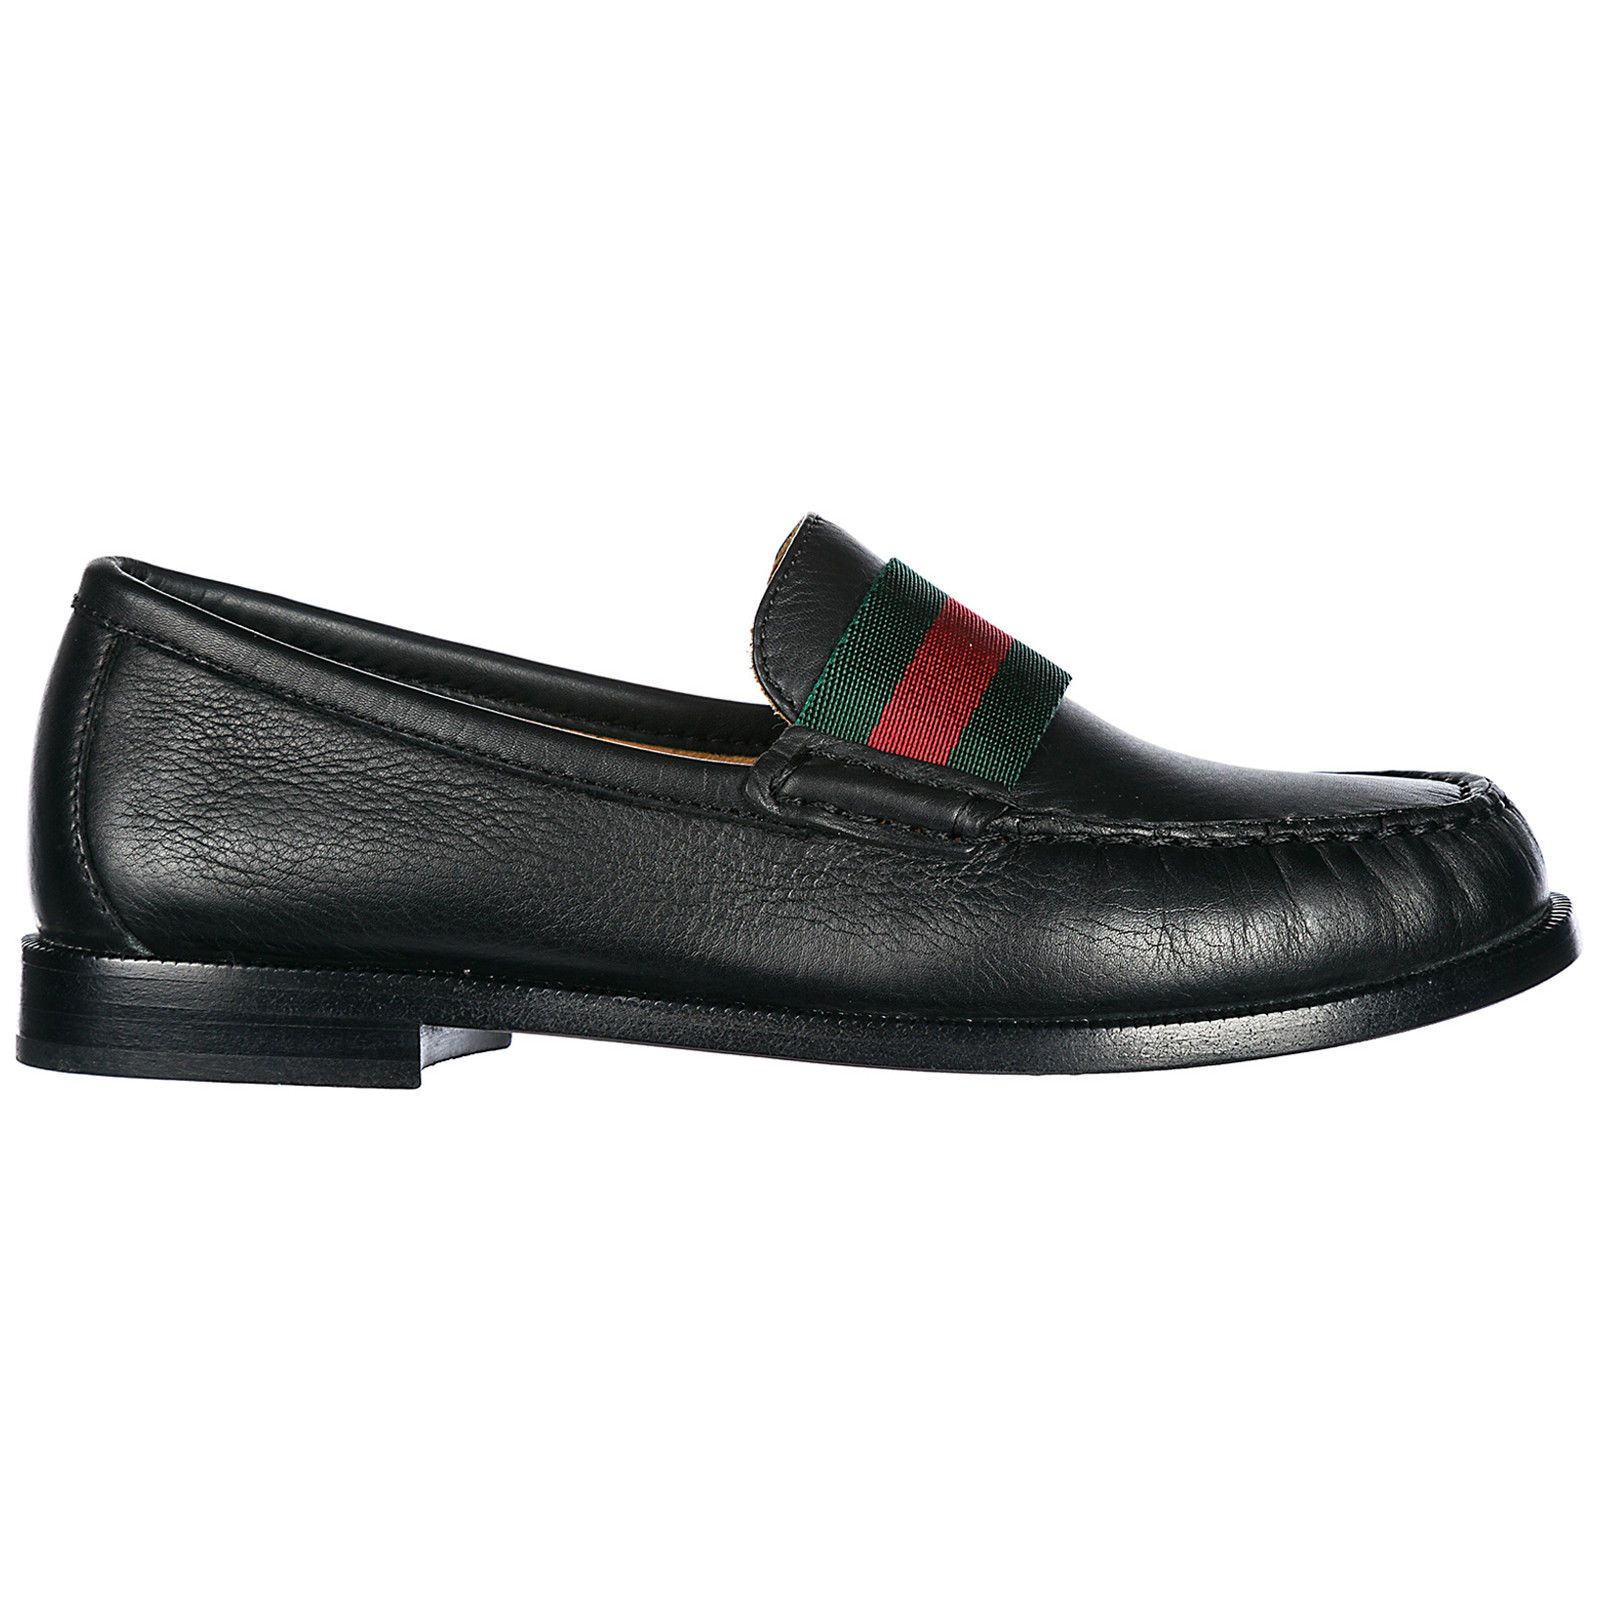 900a152fbdc GUCCI BOYS SHOES BABY CHILD LOAFERS MOCCASSINS LEATHER NEW BLACK C63 (eBay  Link)